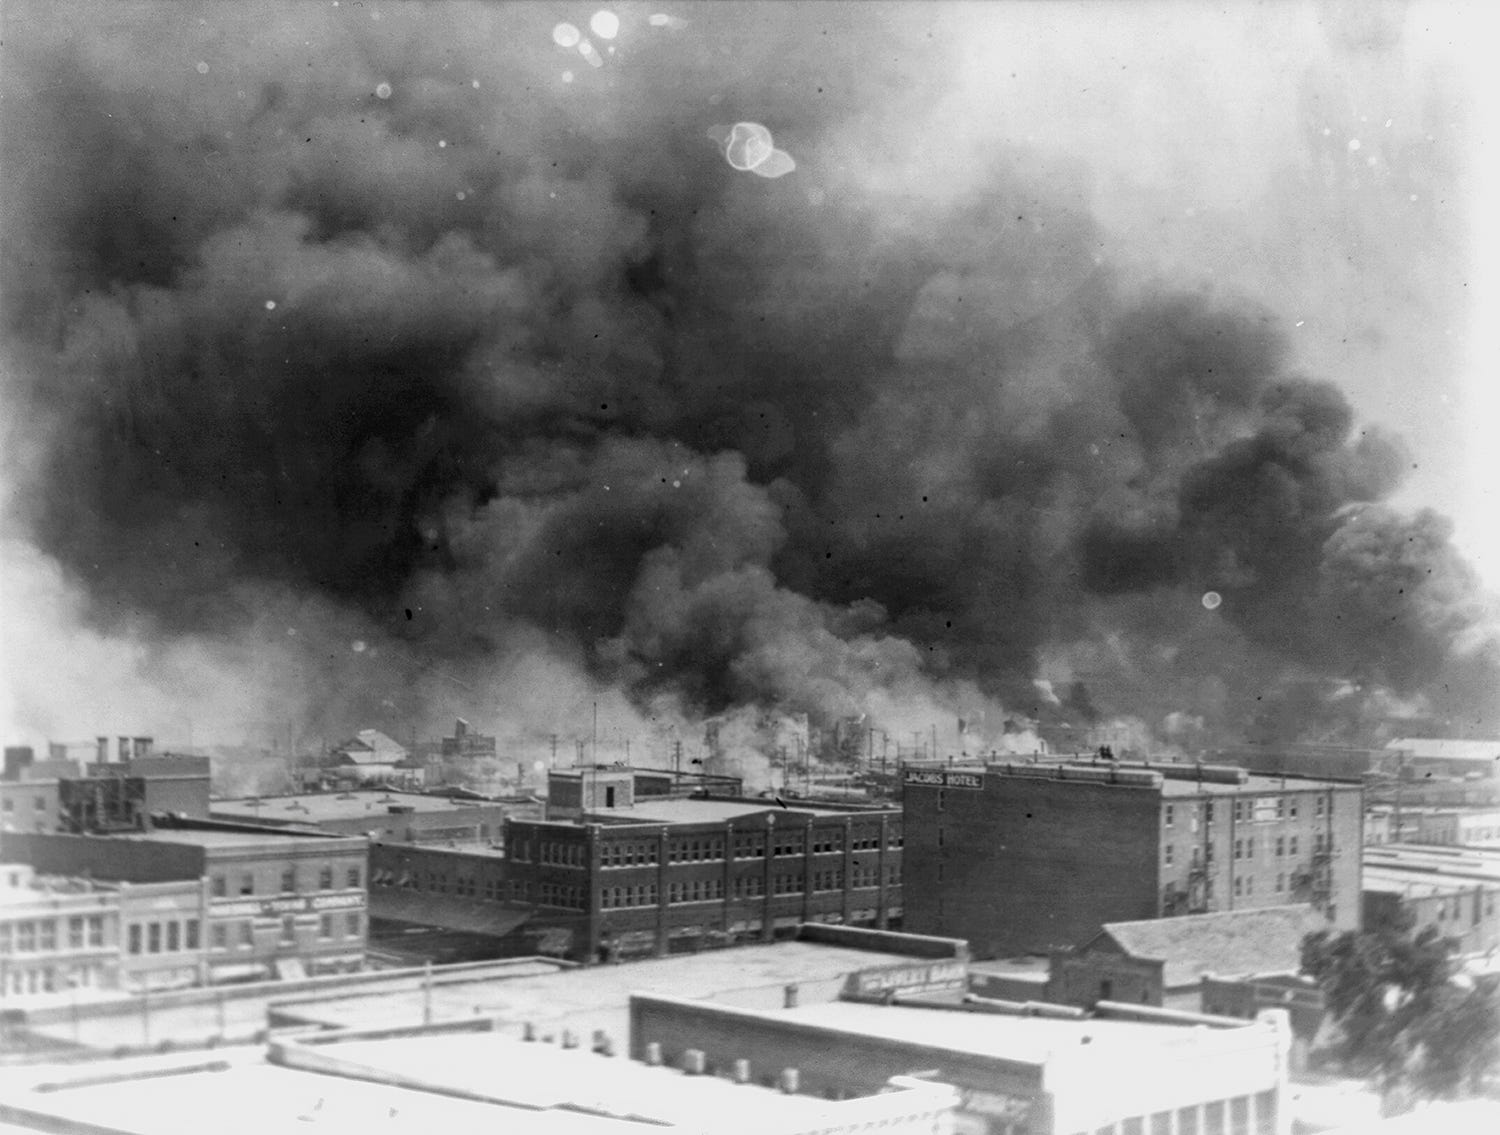 Smoke billows over Tulsa, Oklahoma on May 31, 1921, after a white mob burned down the Greenwood District, which at the time was the wealthiest Black community in the country. The mob attacked businesses on foot and fired guns out of private airplanes, destroying 35 city blocks, 1,250 homes and virtually every business in town.